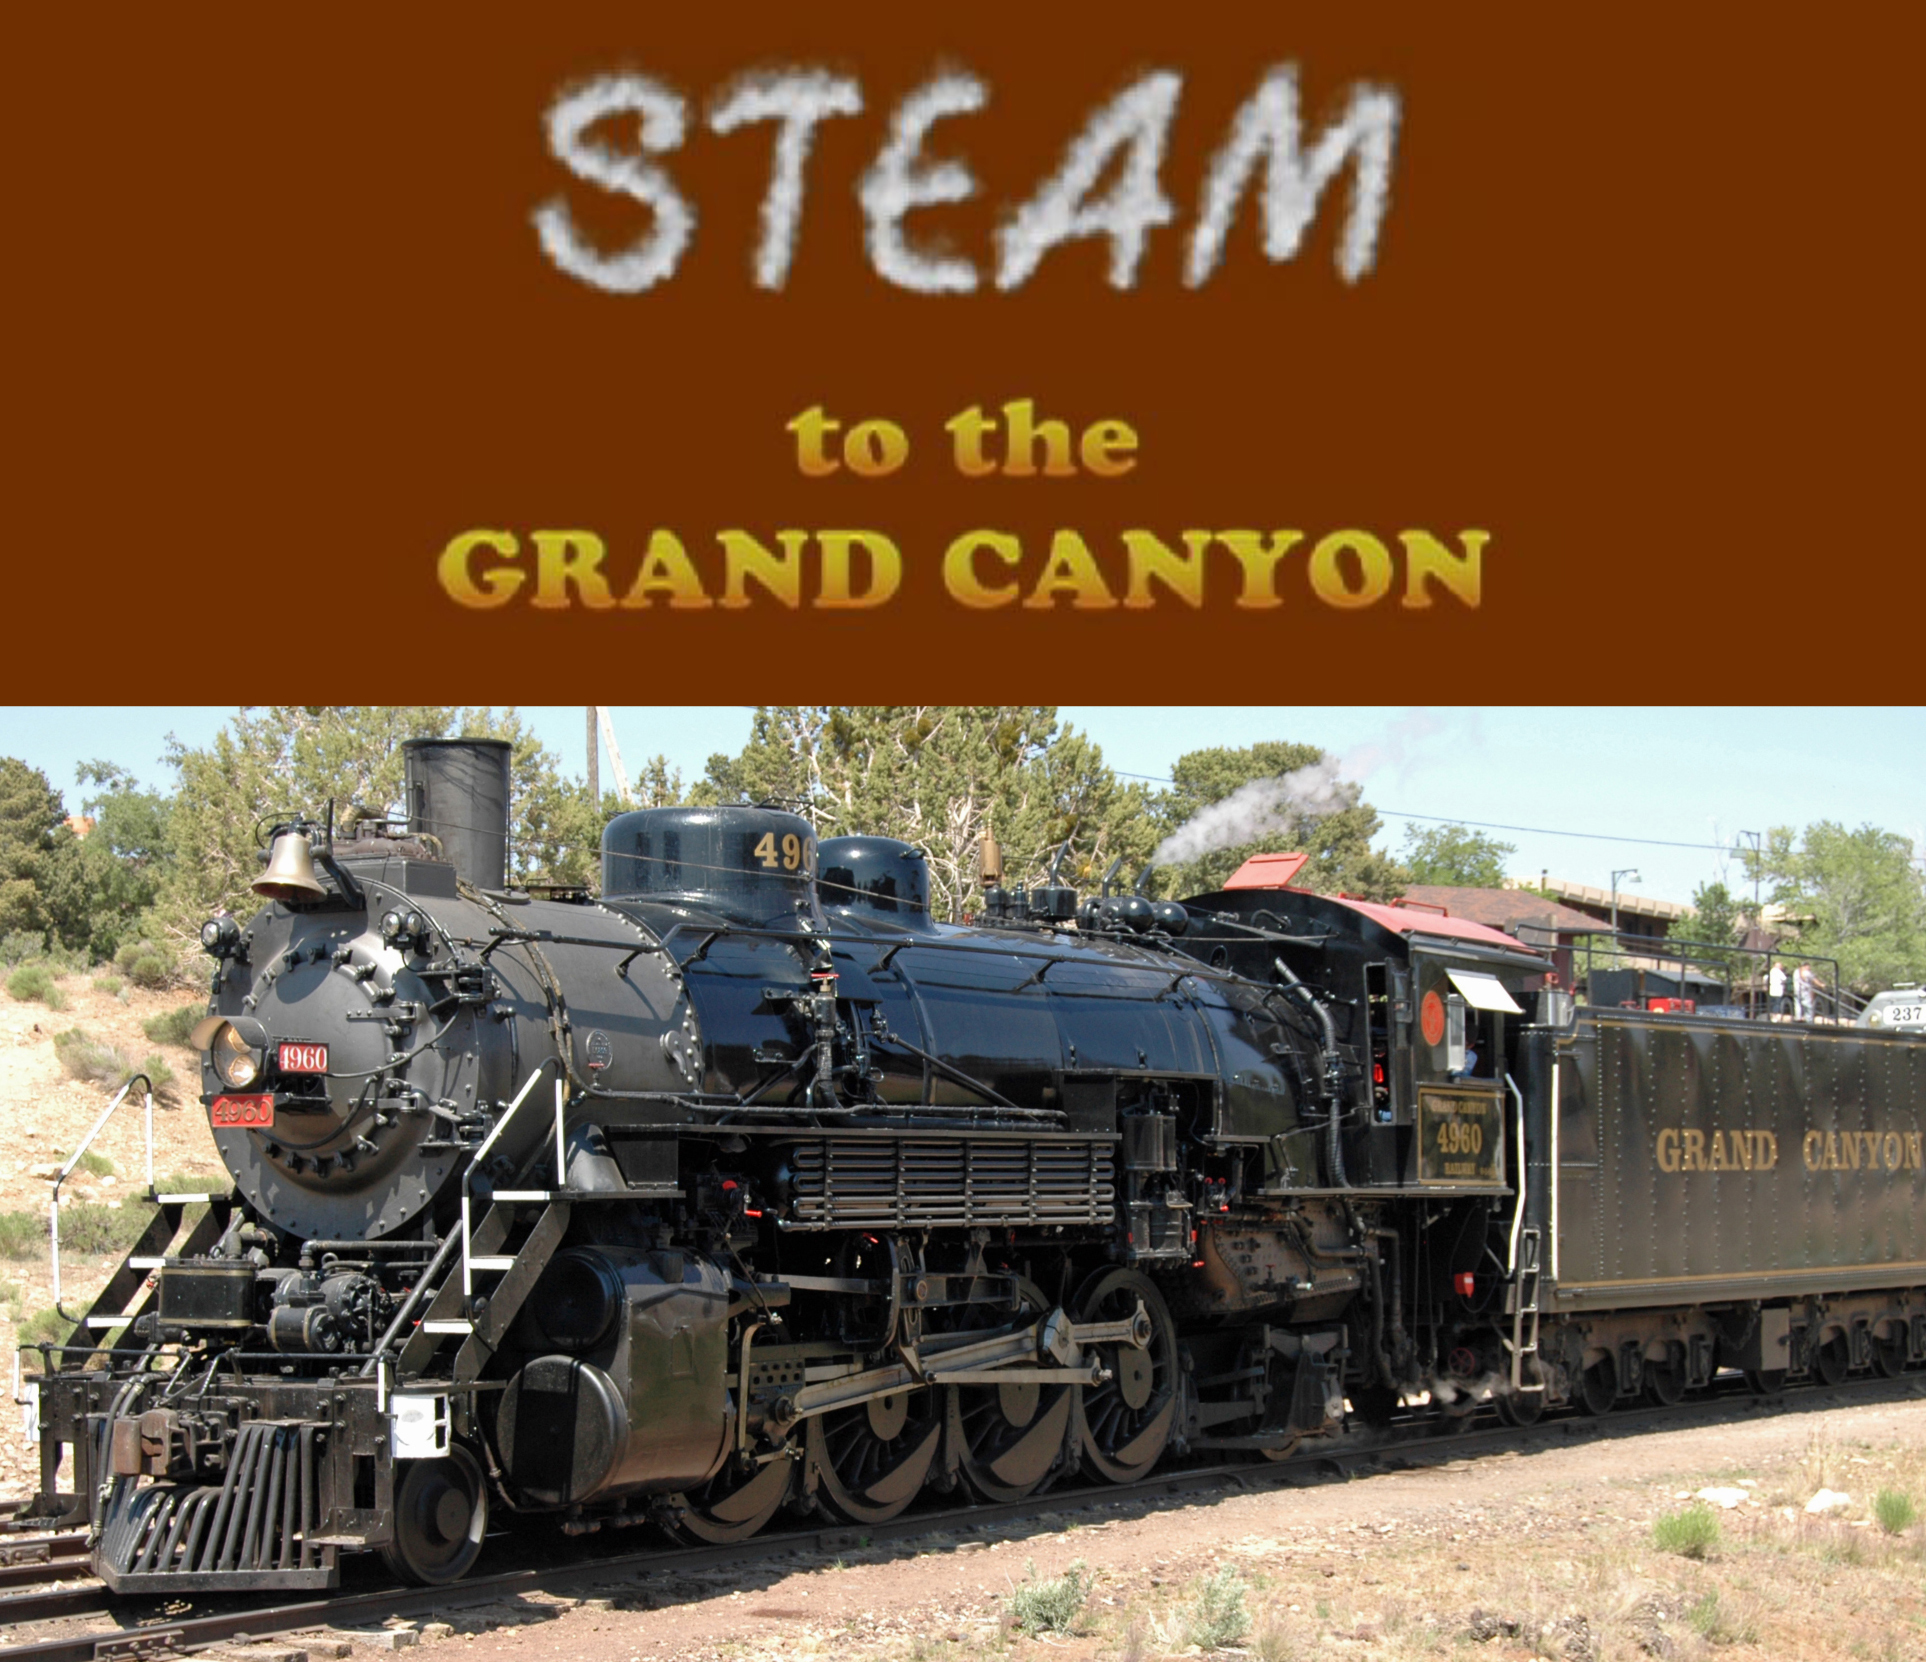 Steam to the Grand Canyon 5 - GrandCanyon